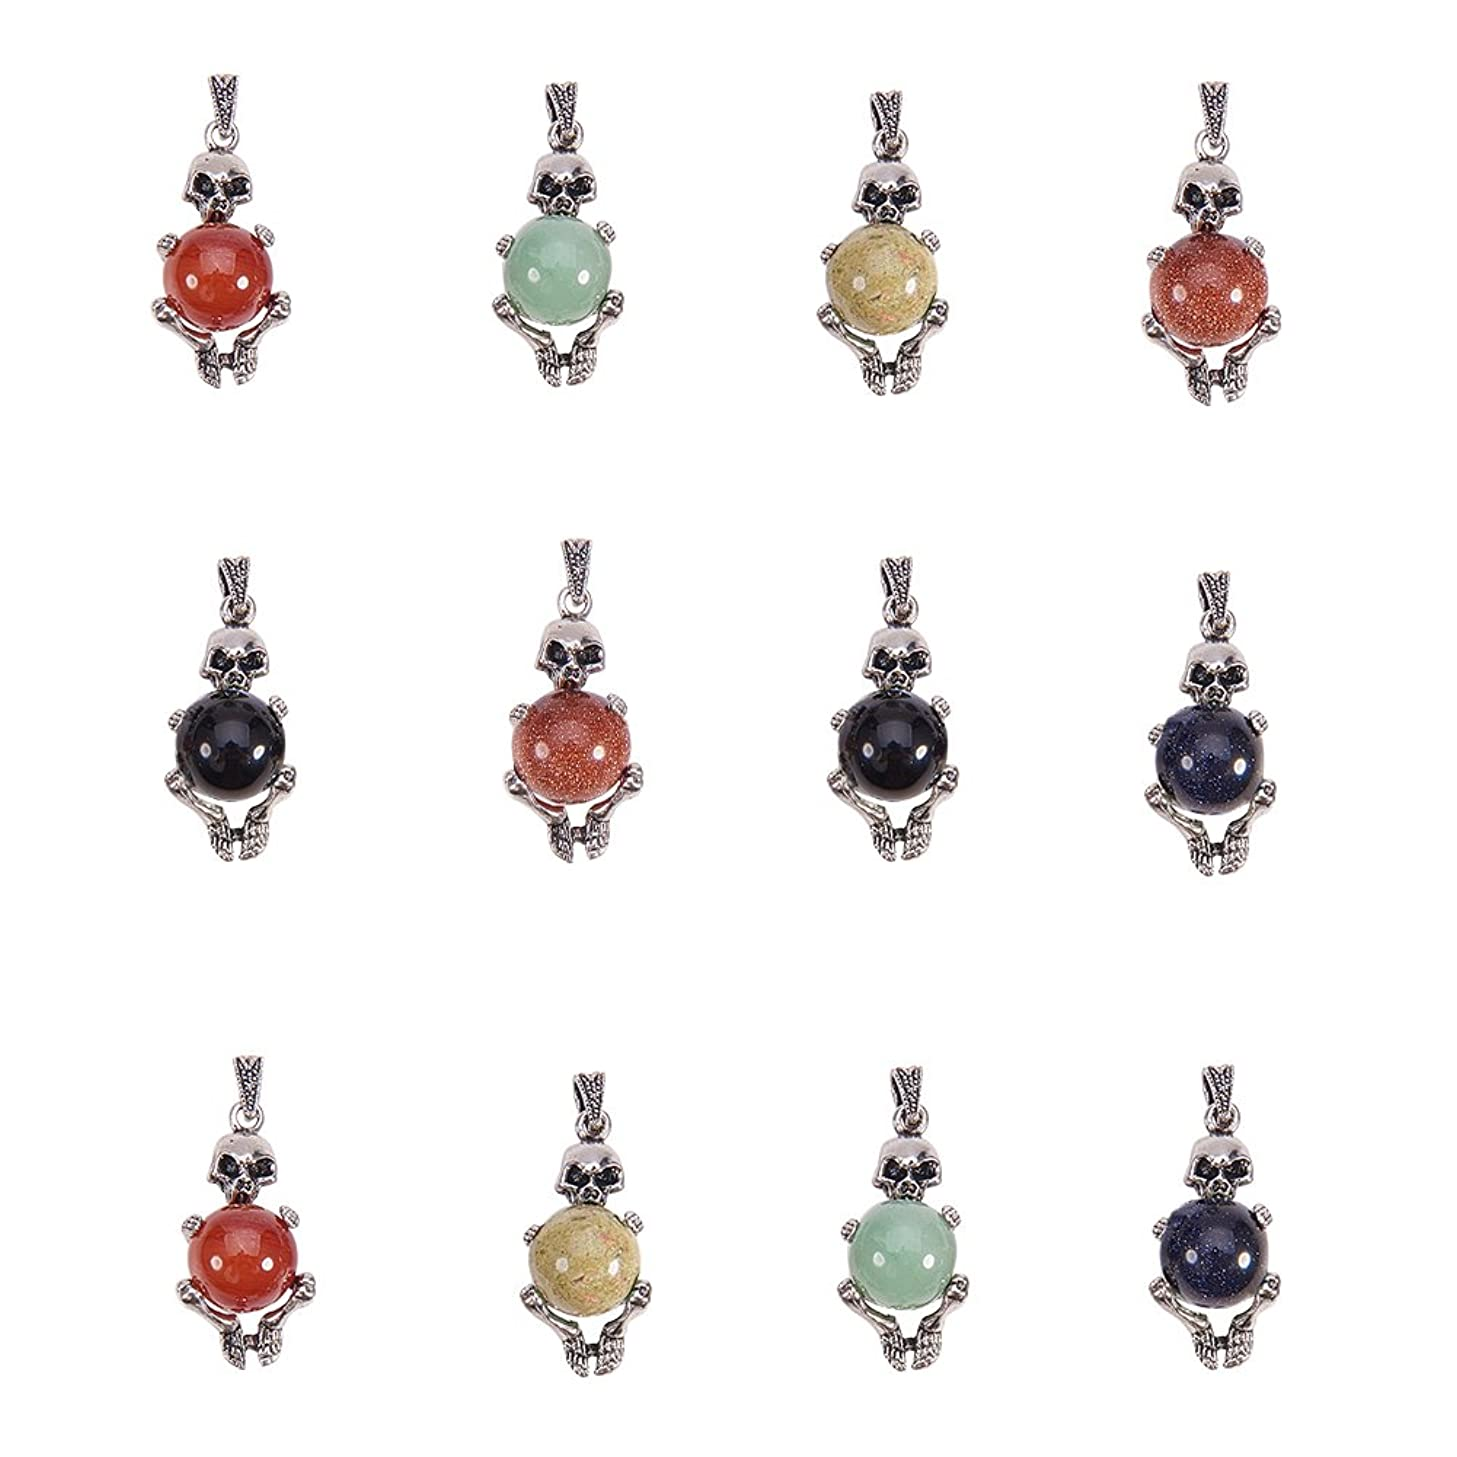 NBEADS 10 Pcs Gemstone Pendants, with Alloy Findings, Skull, Antique Silver, 41x19x17mm, Hole: 4x6mm